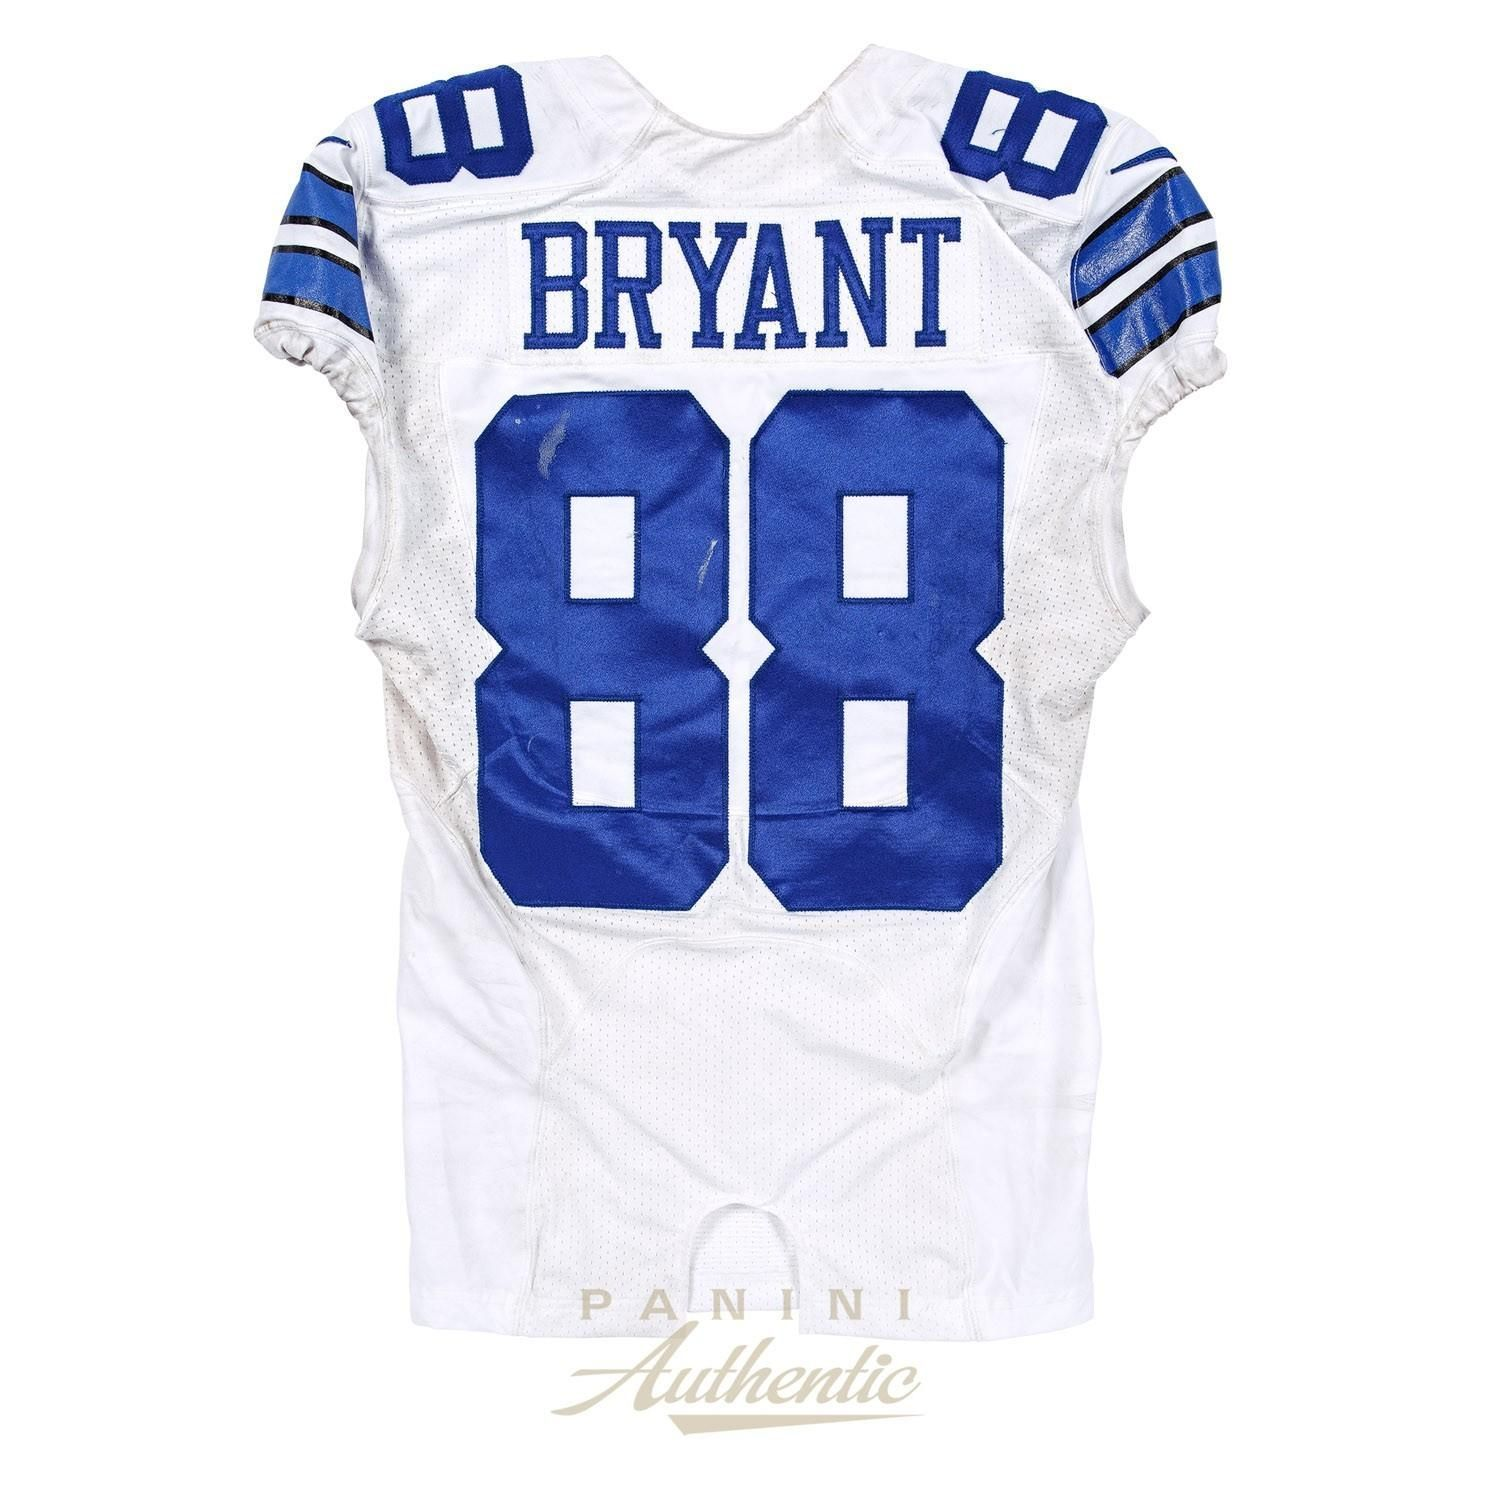 Dez Bryant Dallas Cowboys Game Worn Jersey - Purchase Link #dezbryantjersey ake home a piece of the Cowboys comeback win with this game worn Dez Bryant jersey. This Dez Bryant game worn jersey includes a Panini Authentic certificate of authenticity with a unique hologram number that corresponds to the hologram on the actual collectible. #dezbryant Dez Bryant Dallas Cowboys Game Worn Jersey - Purchase Link #dezbryantjersey ake home a piece of the Cowboys comeback win with this game worn Dez Bryan #dezbryant